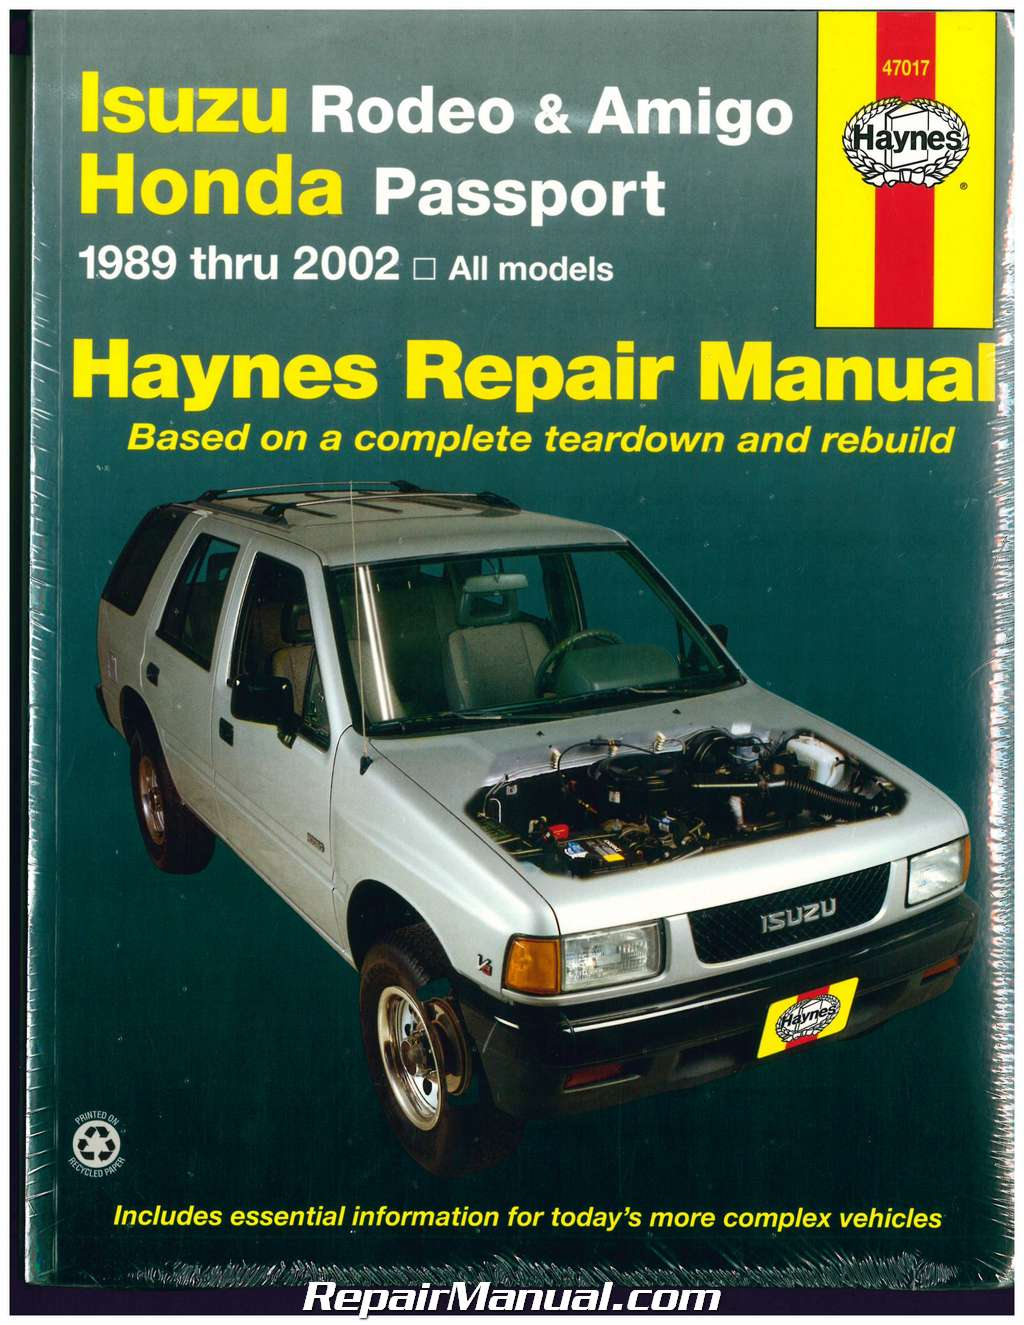 Isuzu Rodeo Amigo Honda Passport 1989-2002 Haynes Automotive Repair Manual